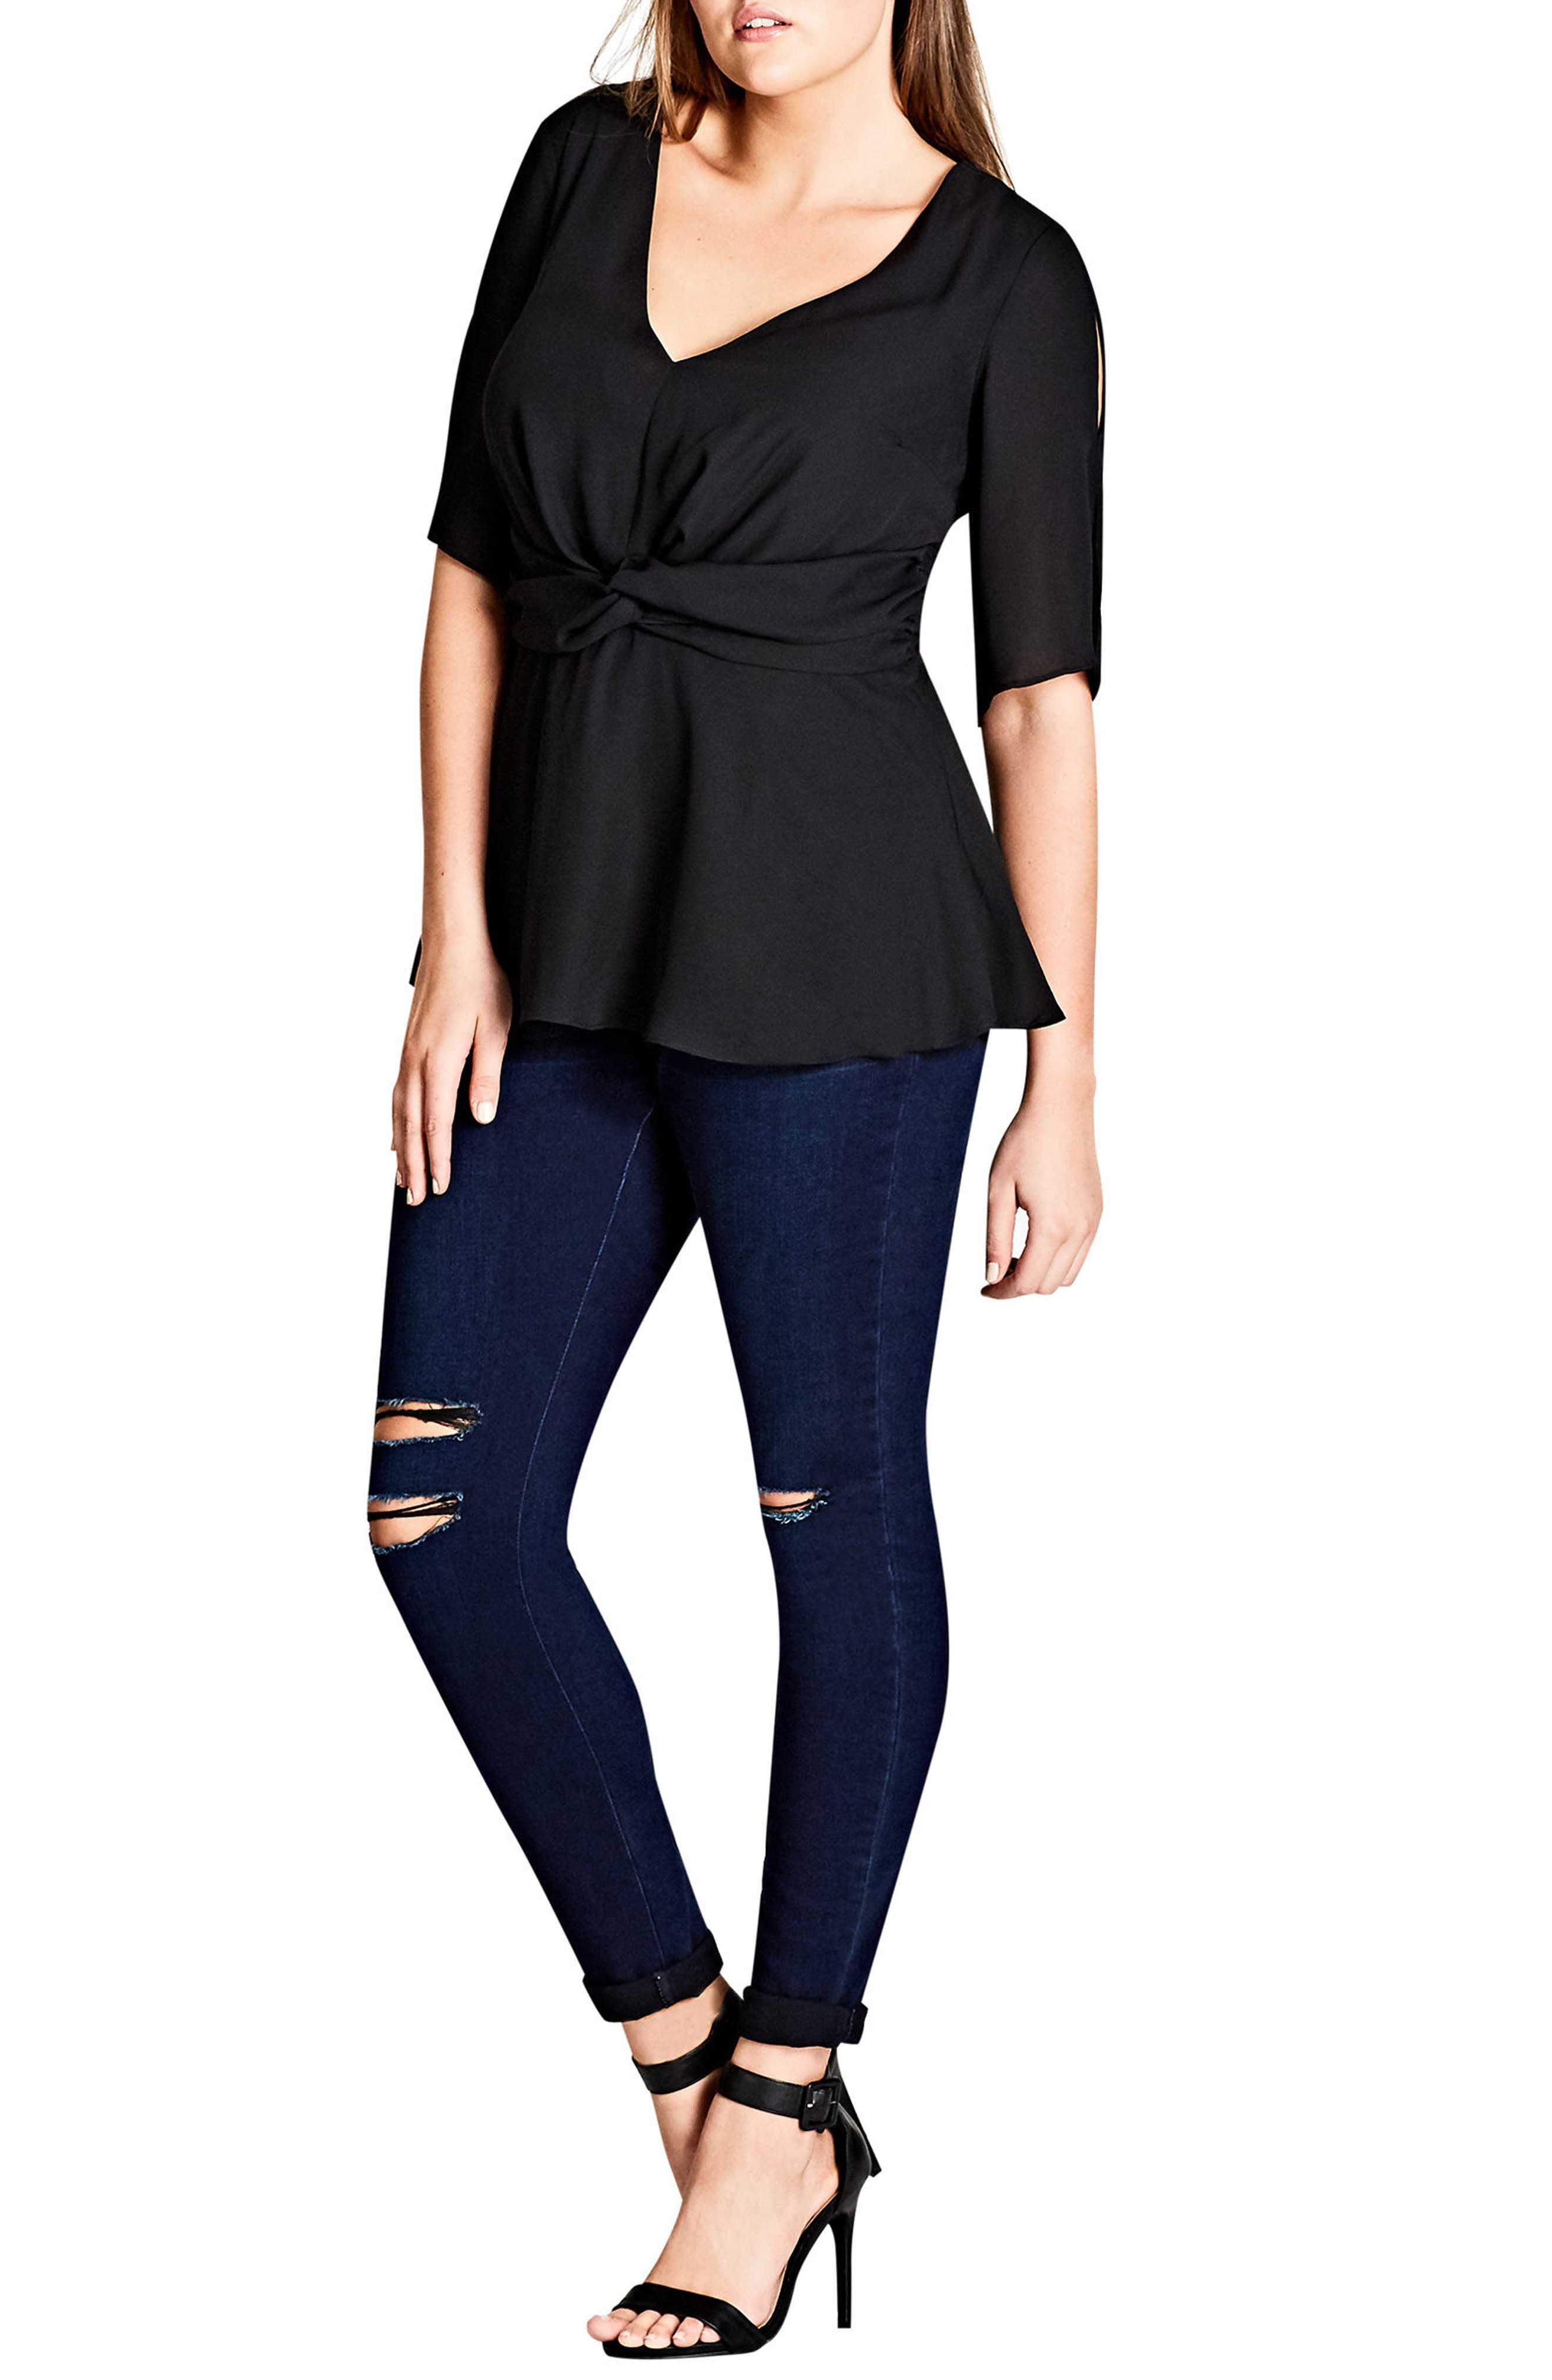 Alternate Image 1 Selected - City Chic Front Twist Top (Plus Size)